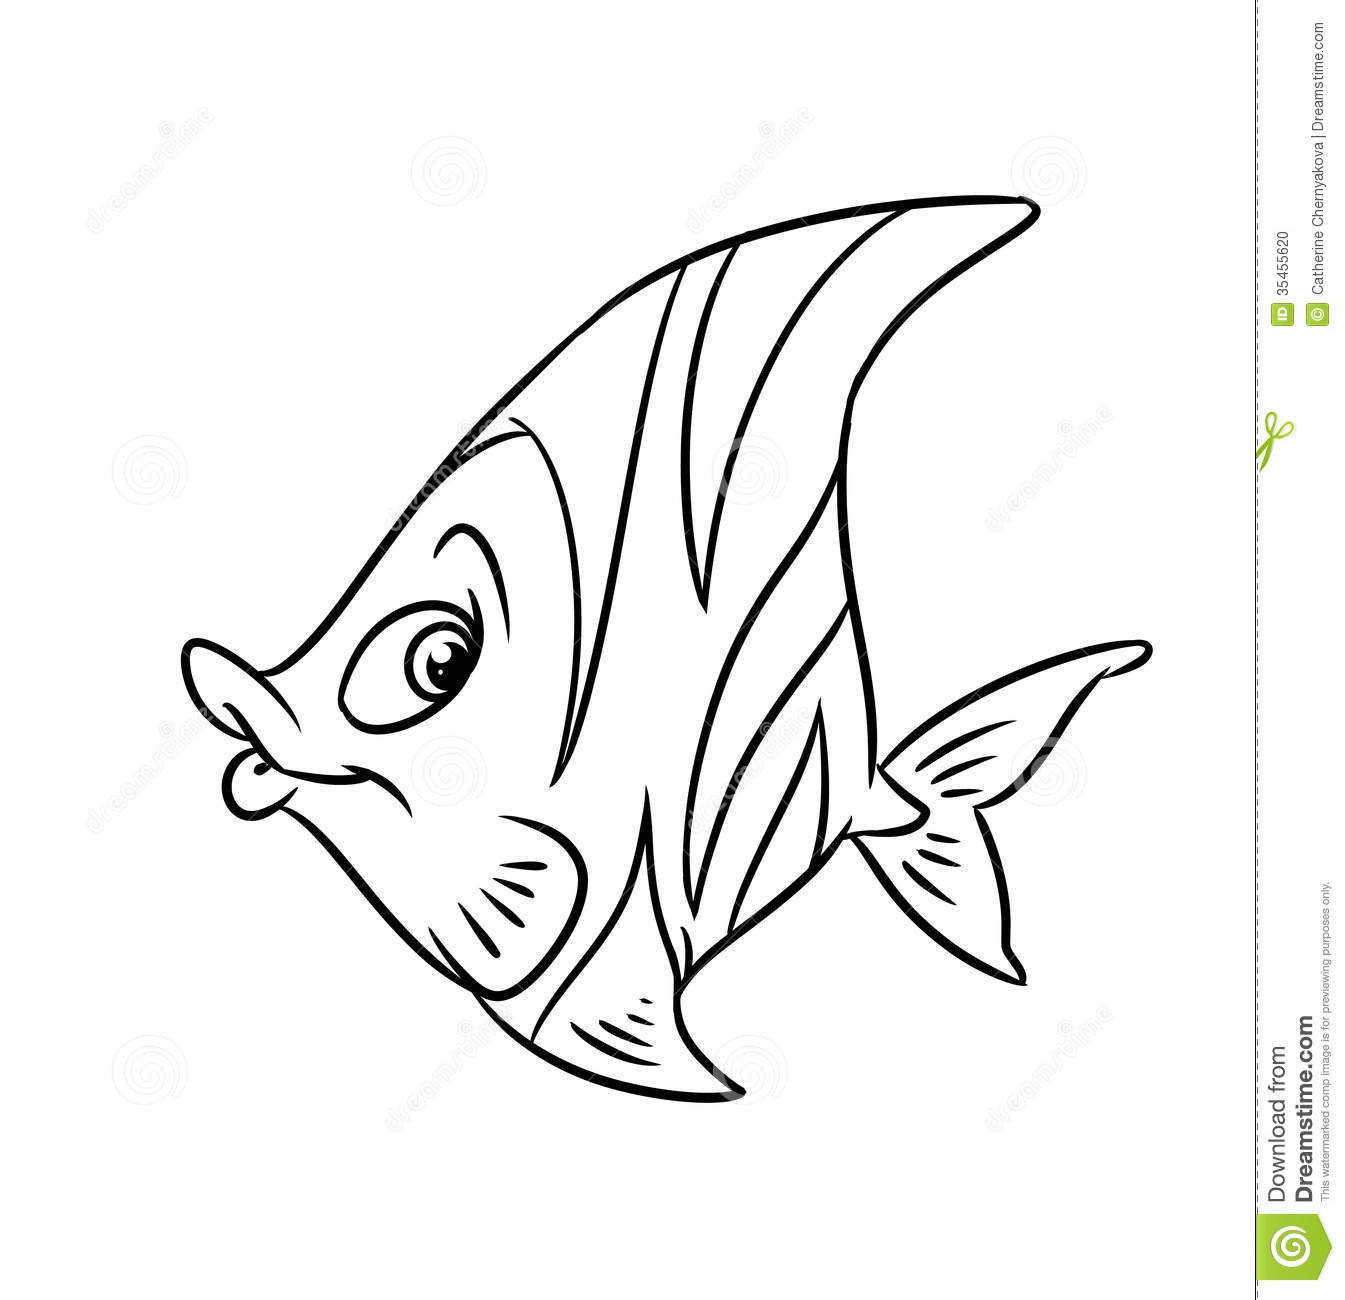 Fish Butterfly Coloring Pages Stock Illustration